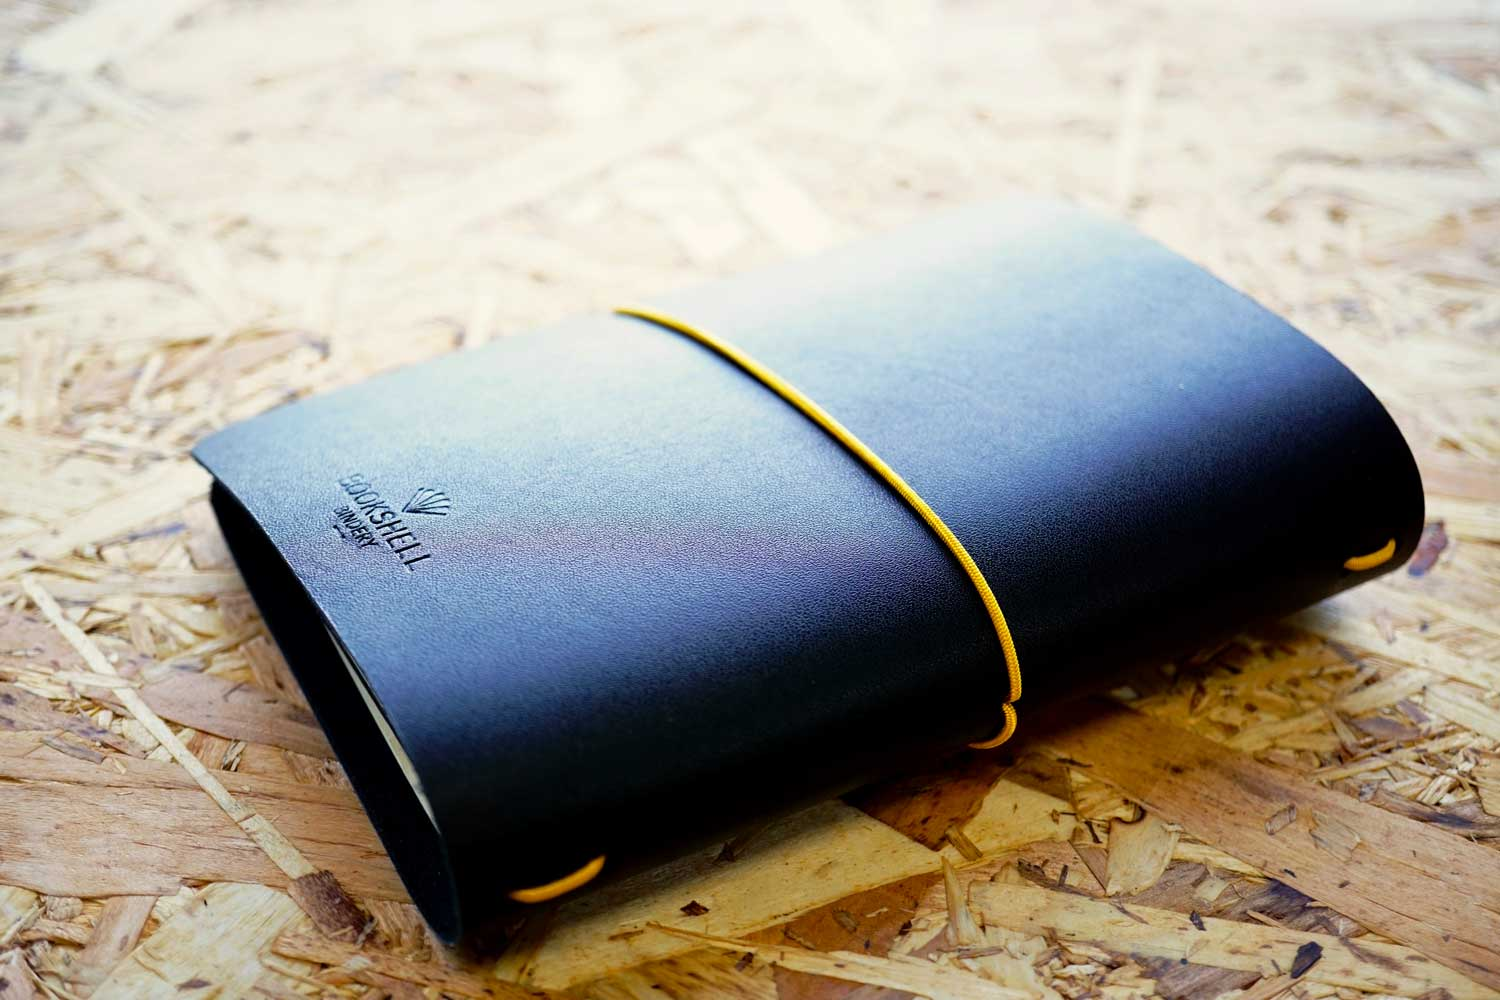 Never-ending journal, Explore. Dream. Discover; A6 leather travel journal with gold foiled compass on the cover, show the back cover